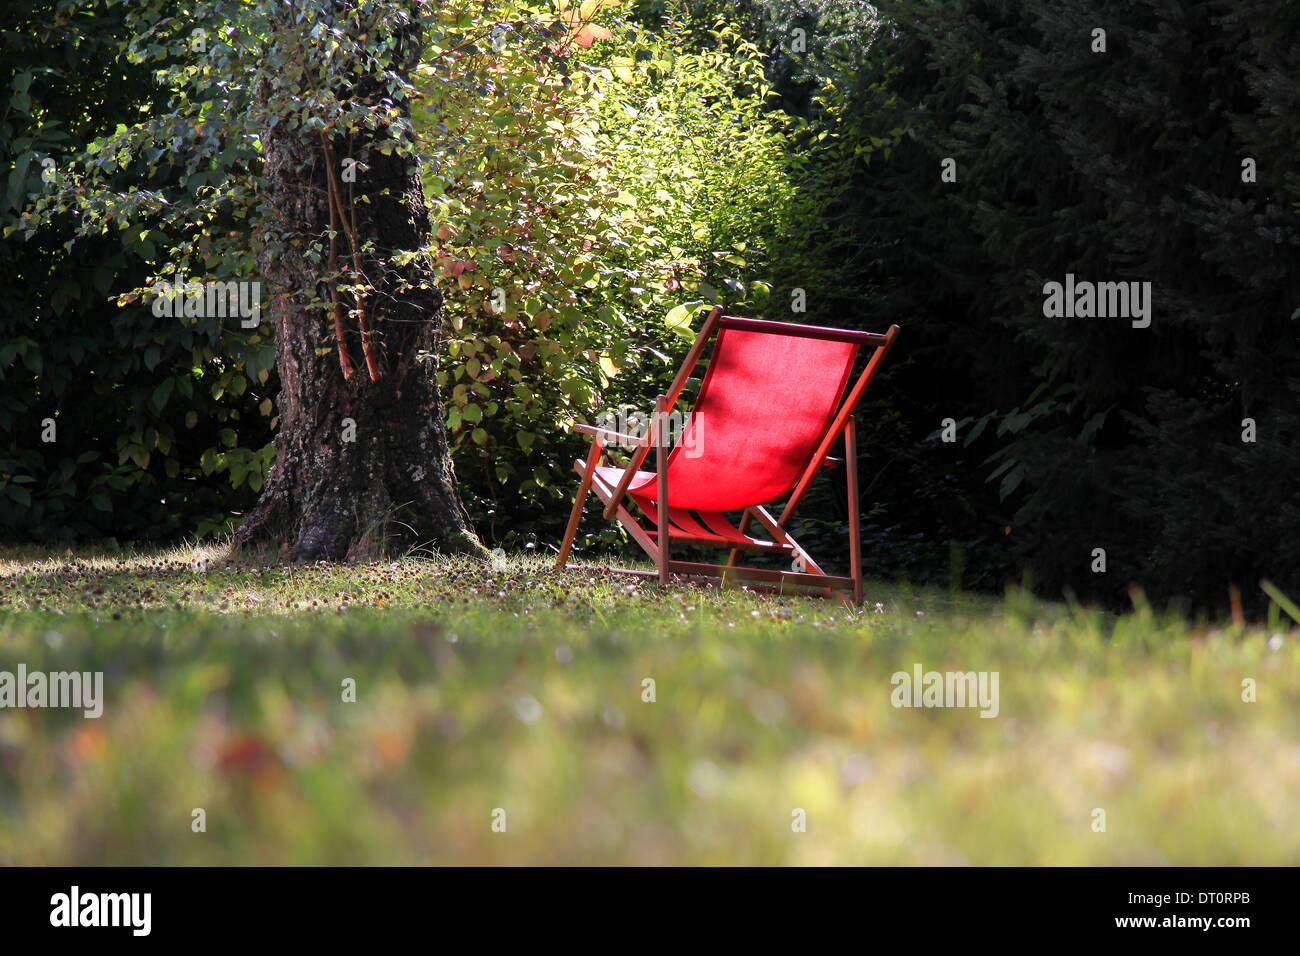 Red deck chair in the garden with big birch tree - Stock Image